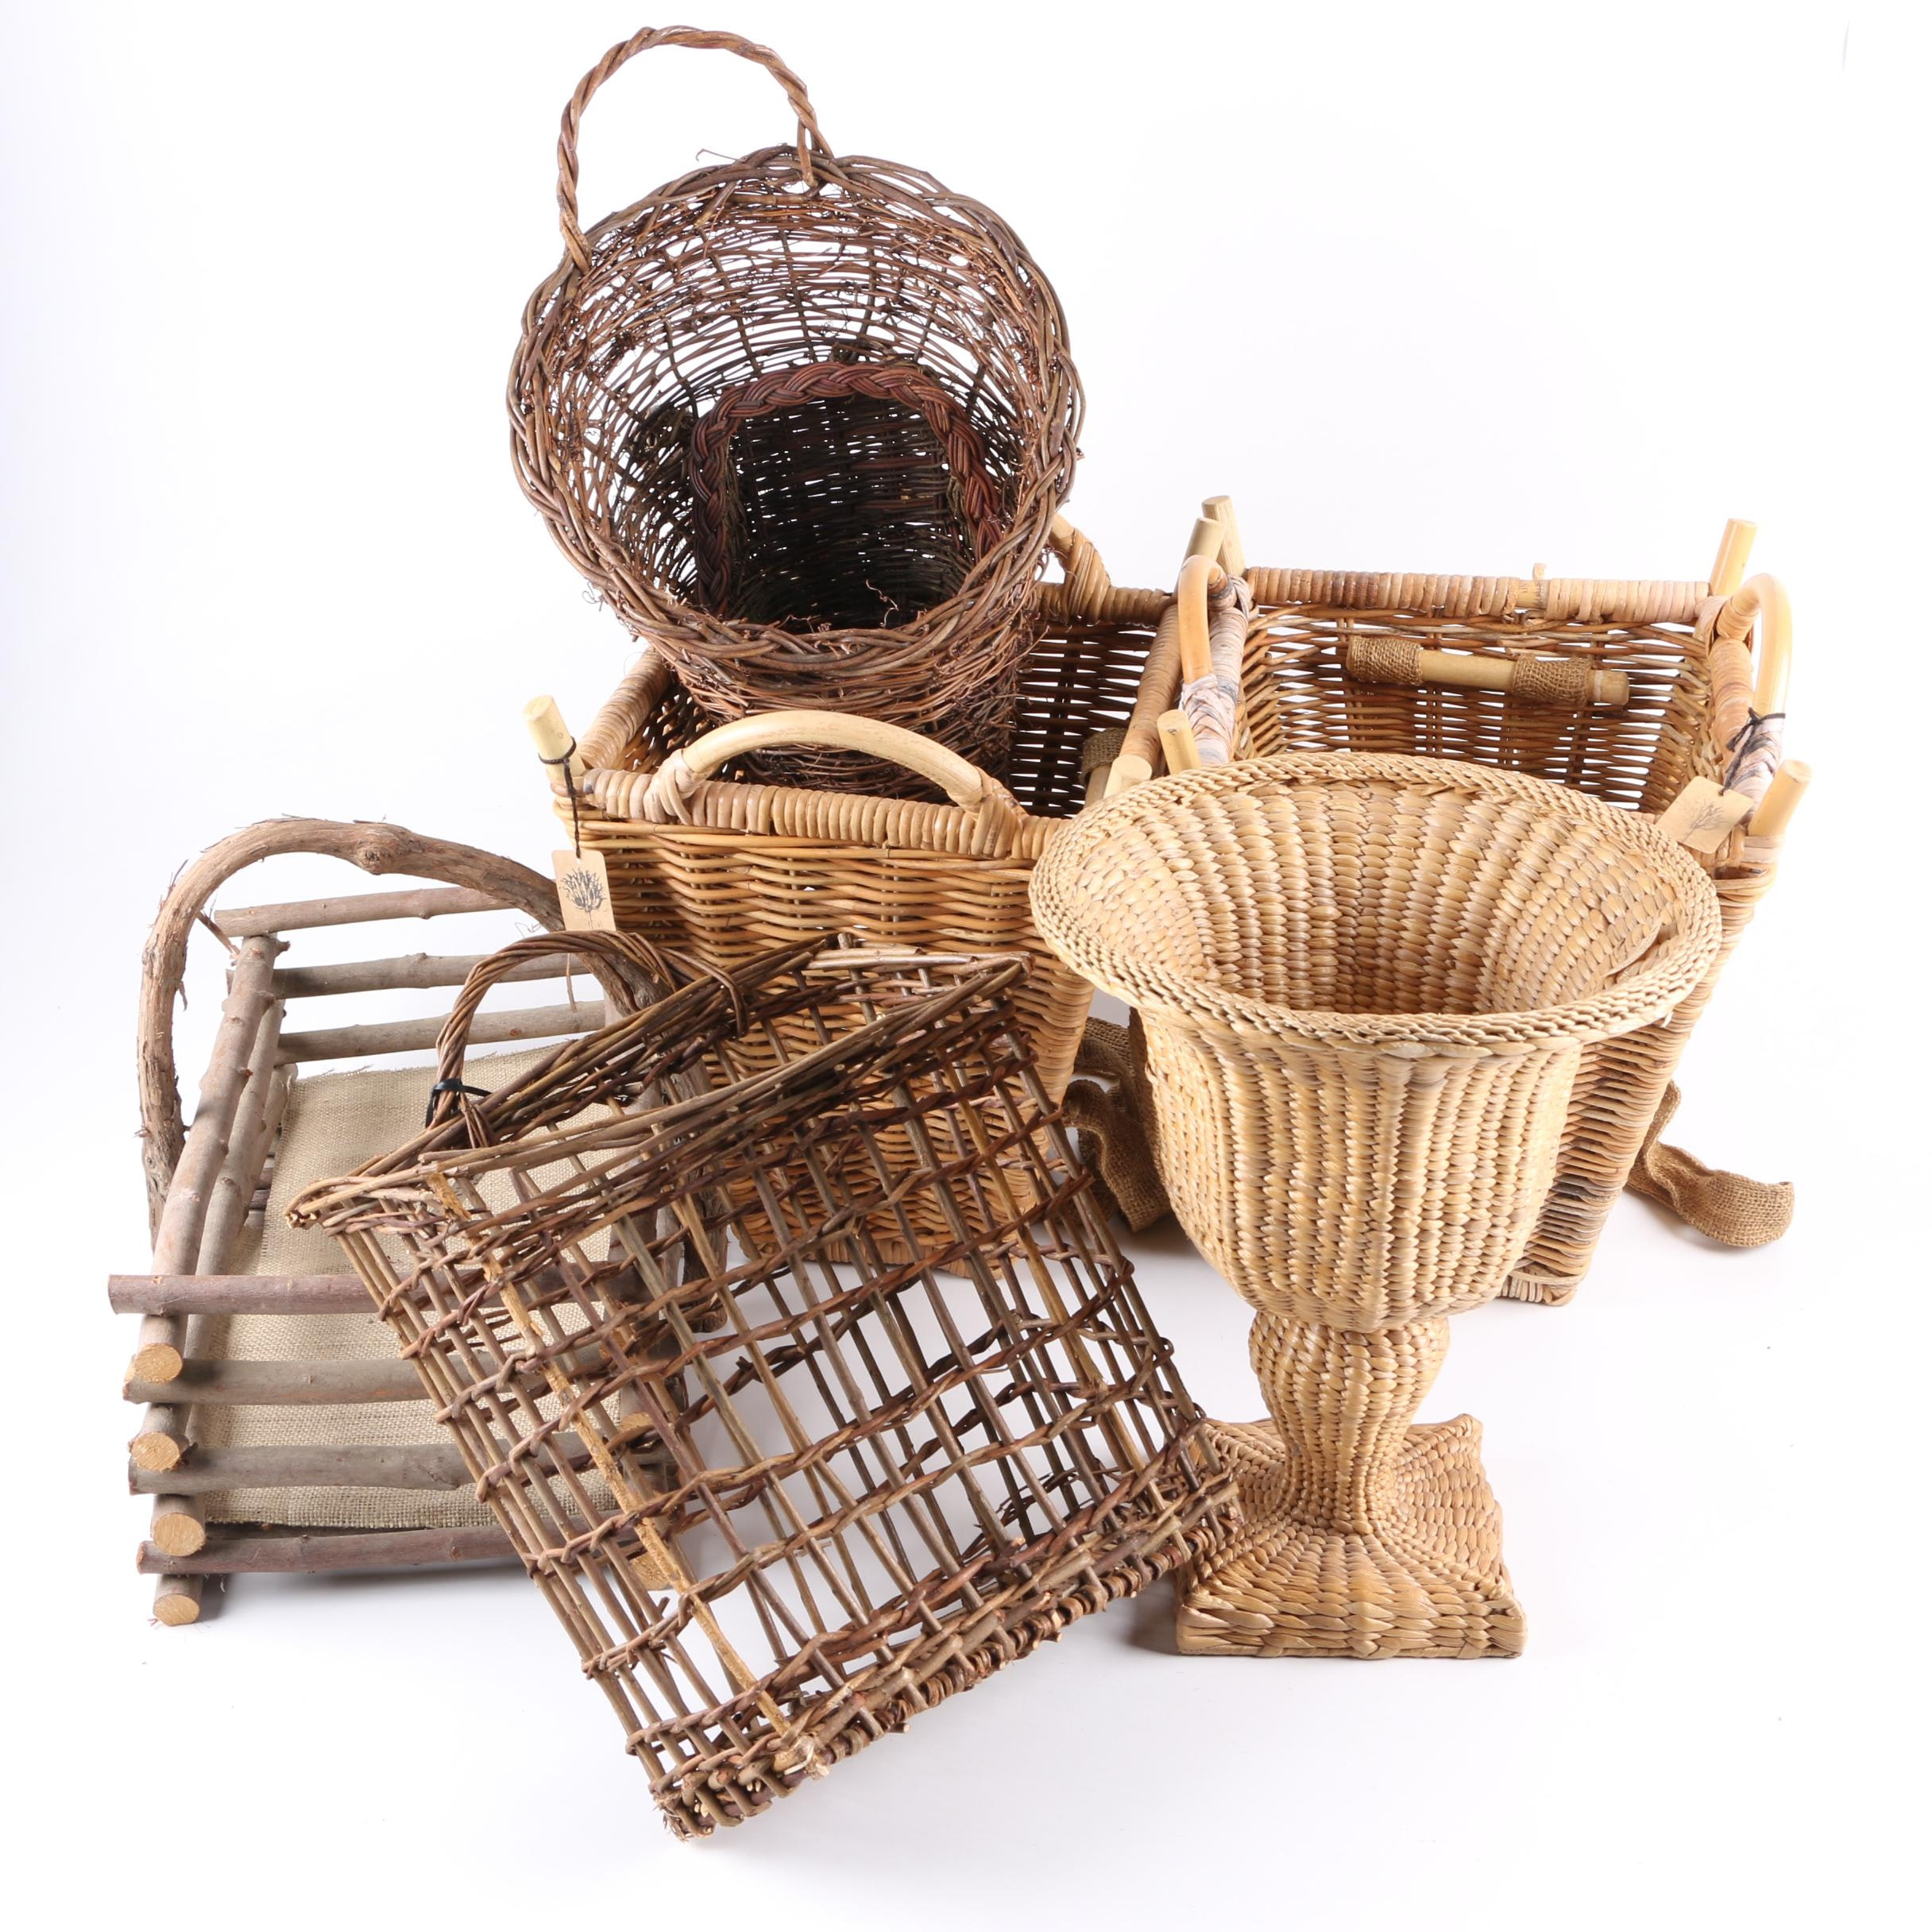 Collection of Wooden Baskets, Planters and Cornucopias